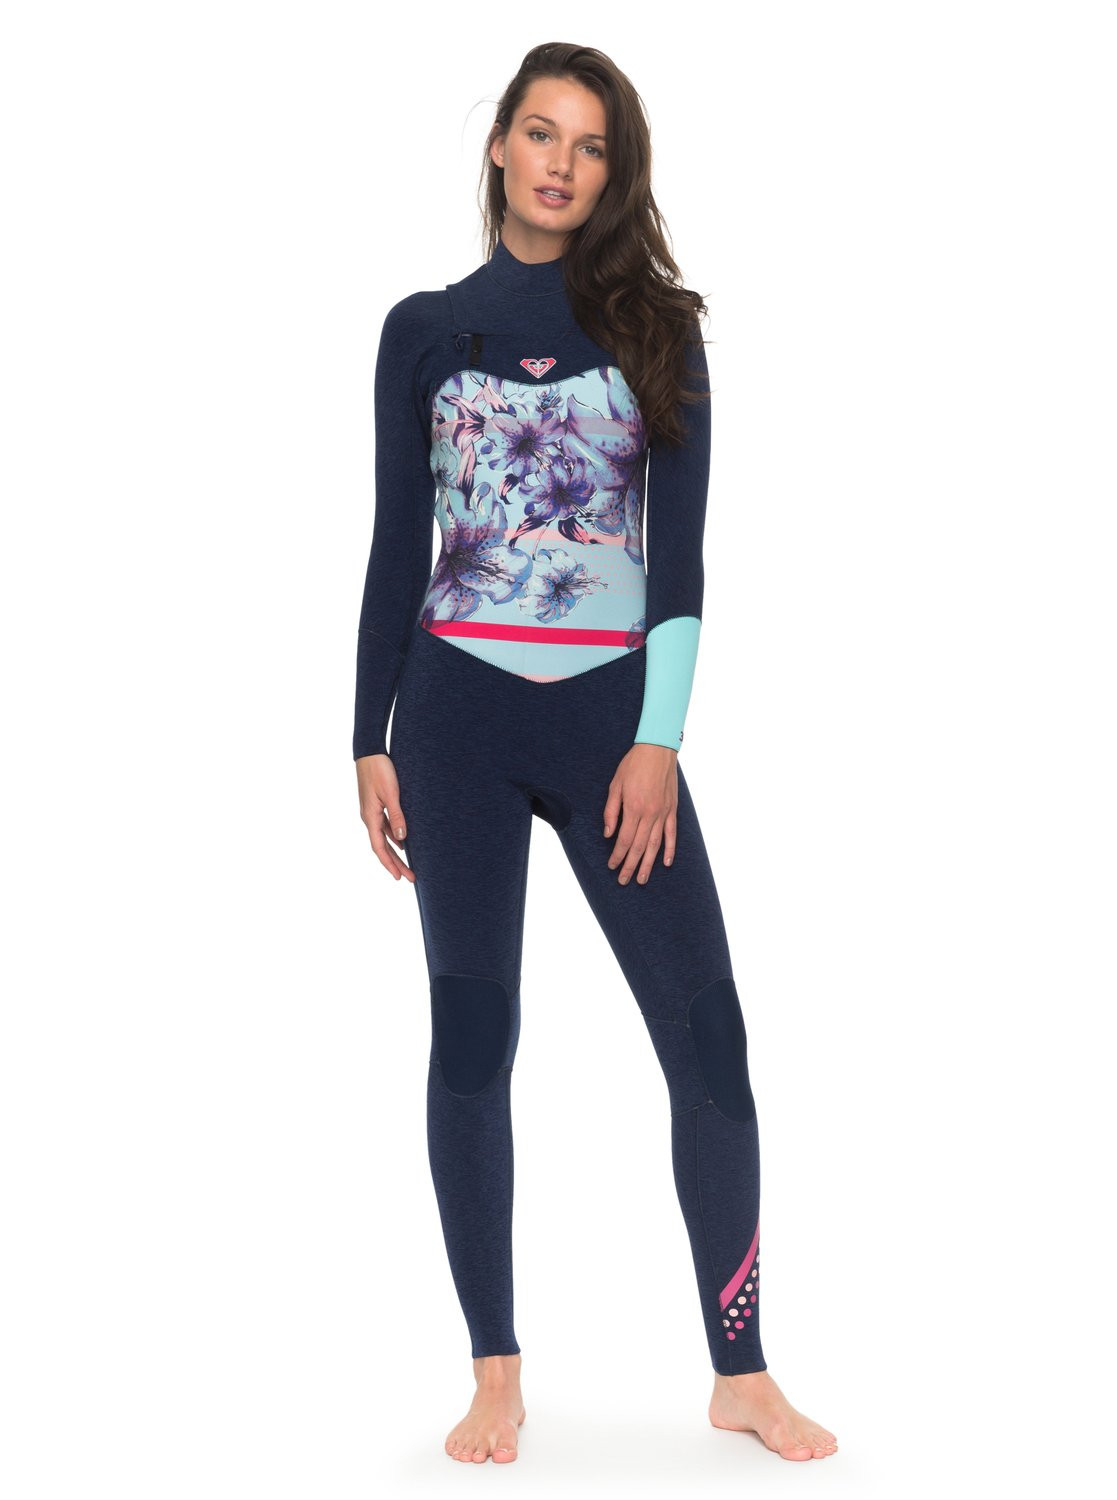 NEOPRENO ROXY POP SURF 3/2